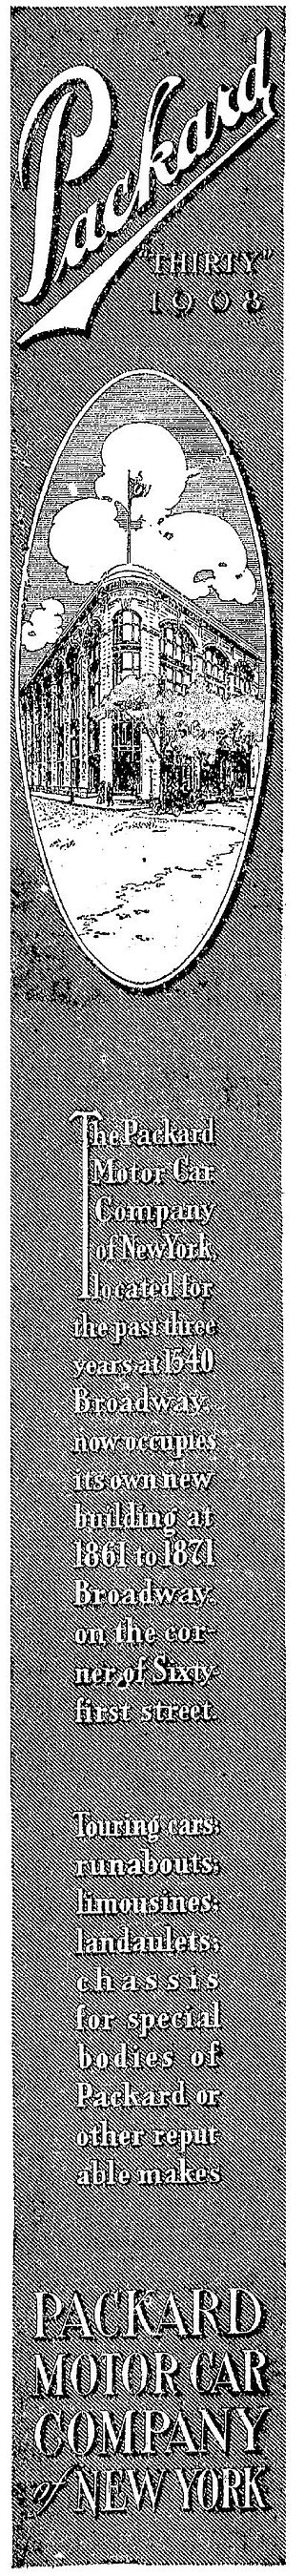 1907 Packard ad The New York Times 1907-11-06